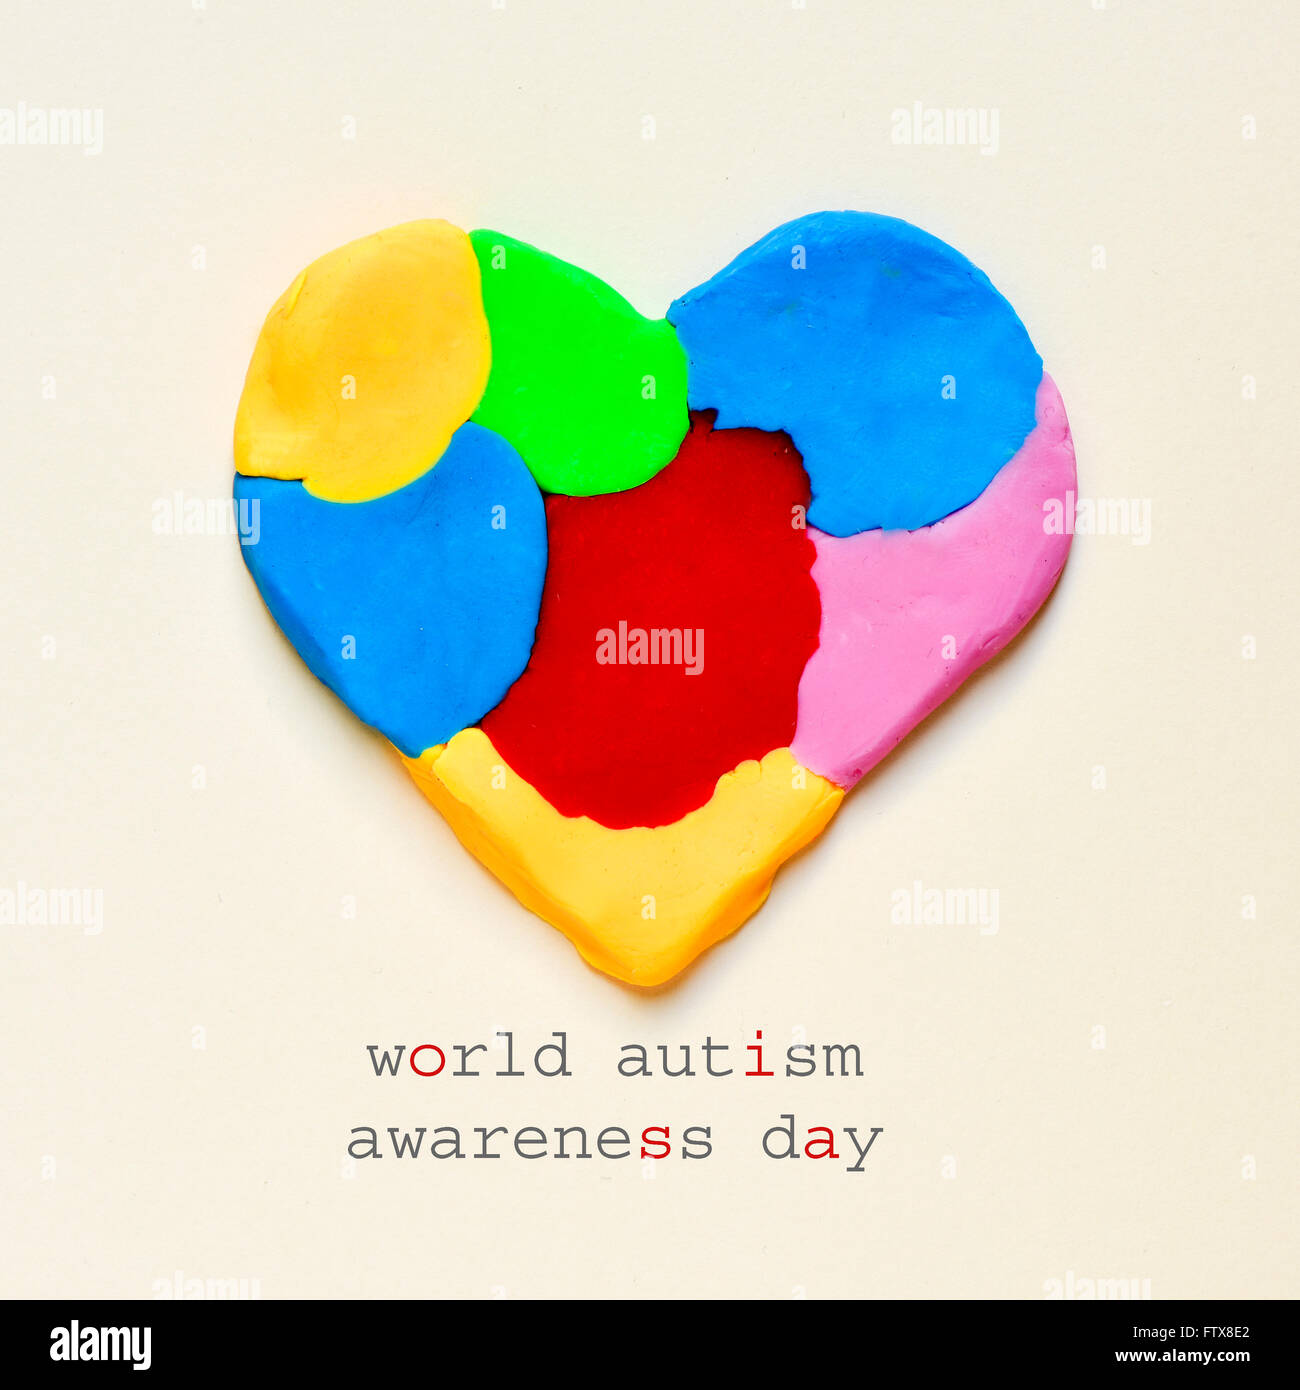 the text world autism awareness day and a heart made from modelling clay of different colors on an off-white background - Stock Image